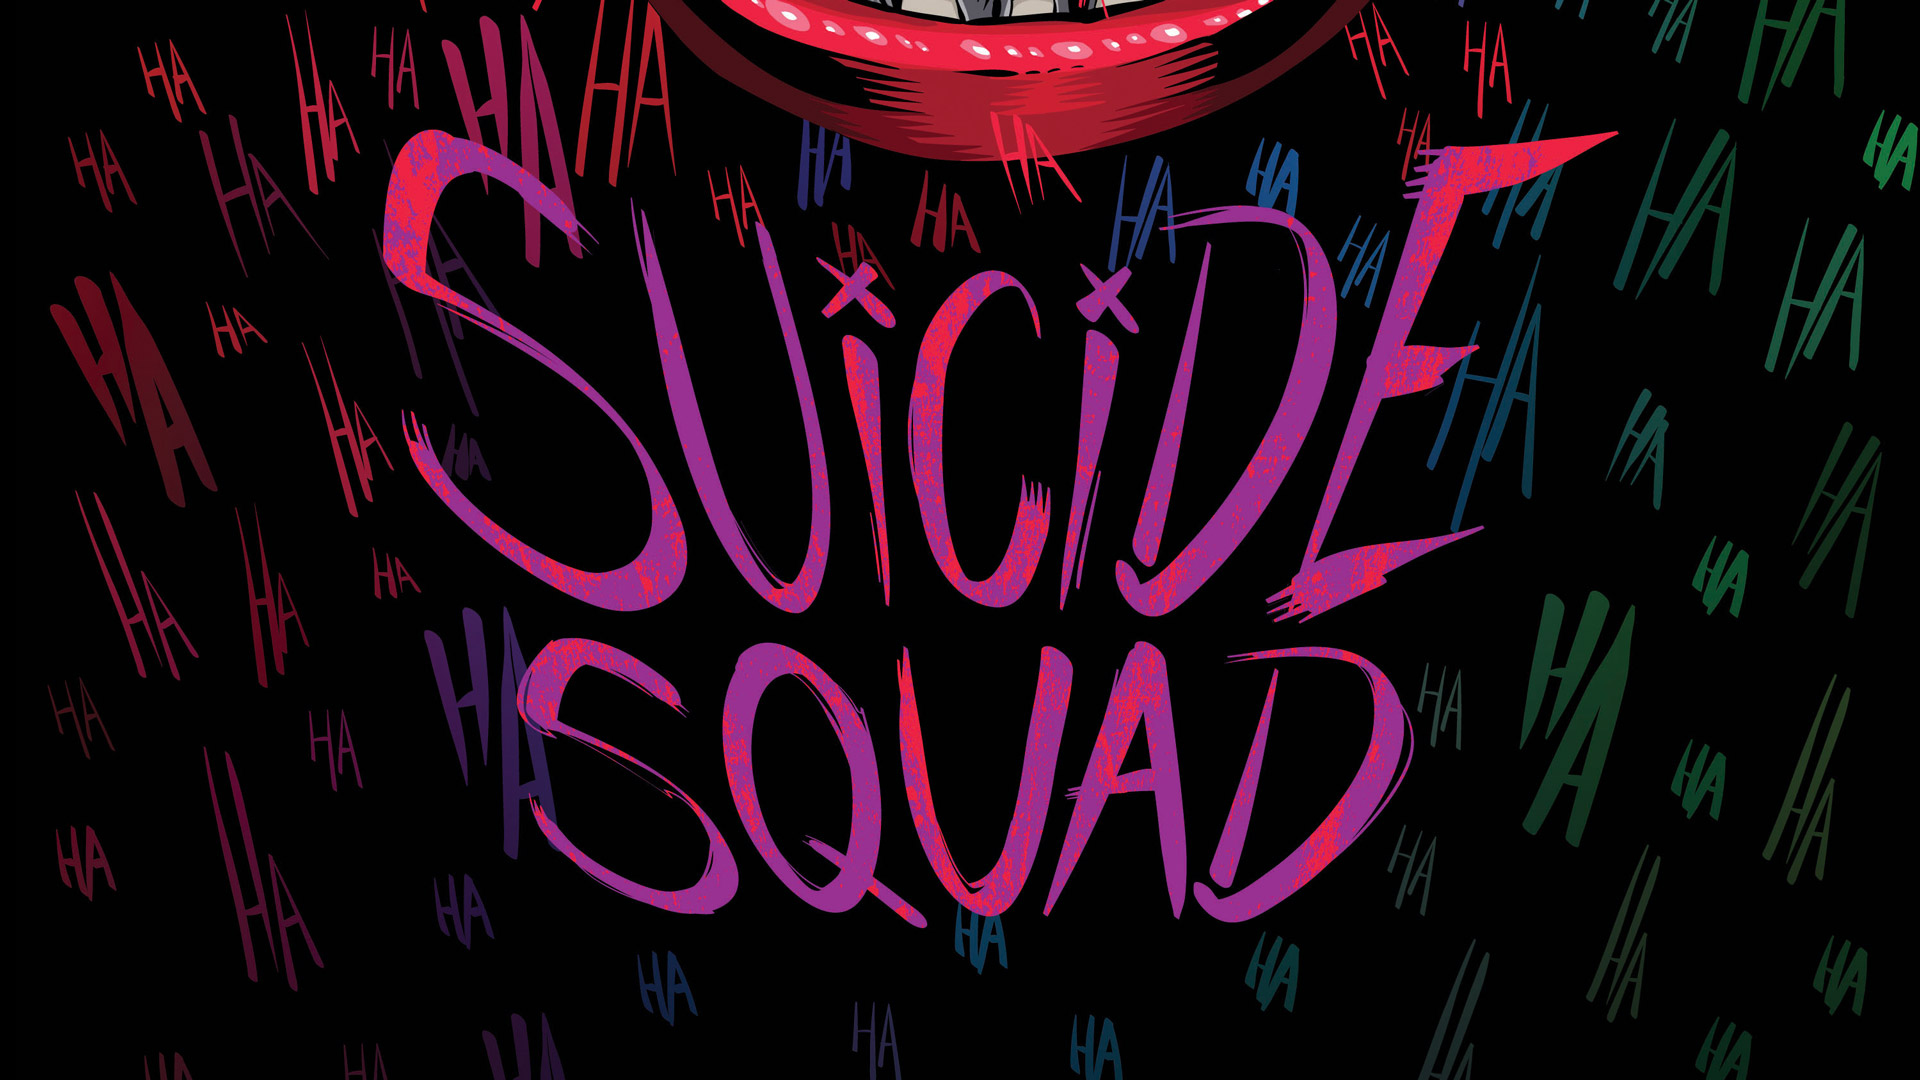 Wallpaper Suicide squad typography